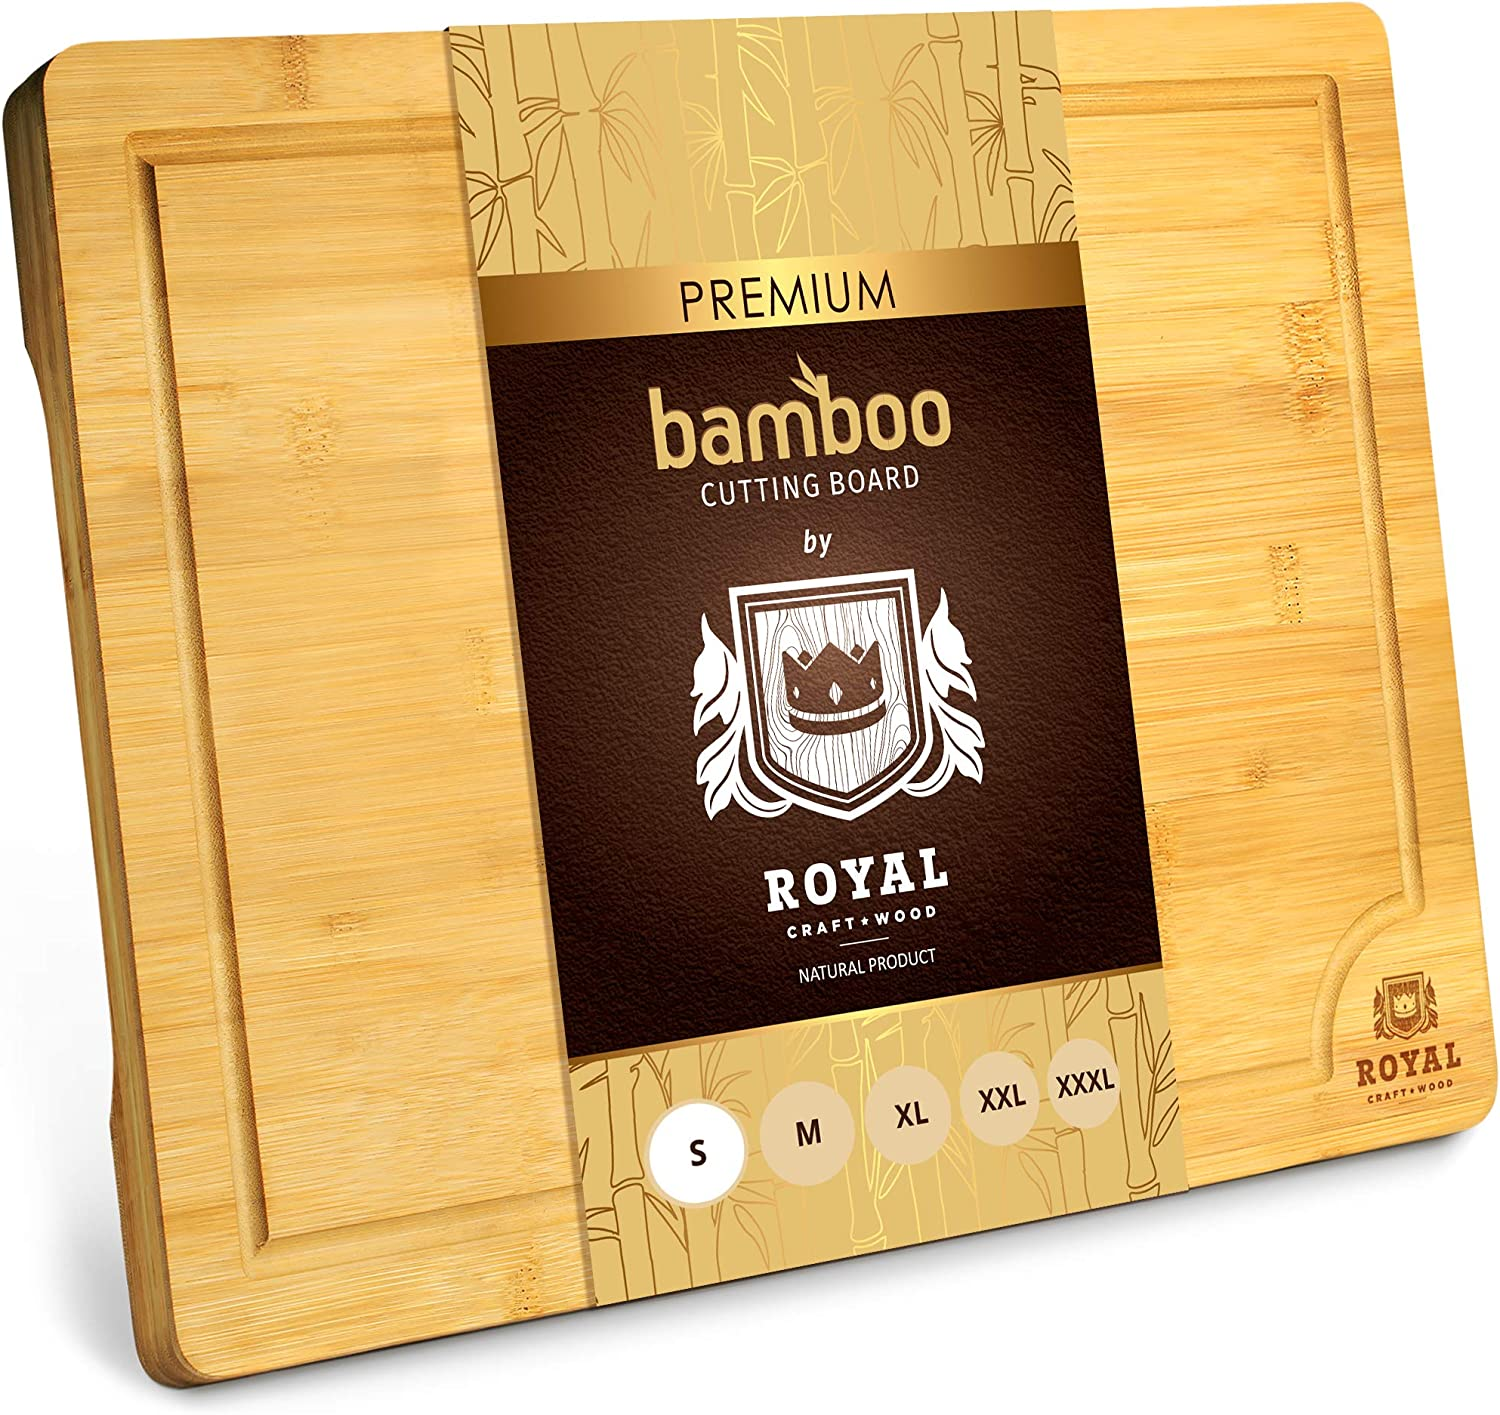 Bamboo Cutting Board With Juice Groove Kitchen Chopping Board For Meat Butcher Block Cheese And Vegetables Heavy Duty Serving Tray W Handles Small 12 X 8 Kitchen Dining